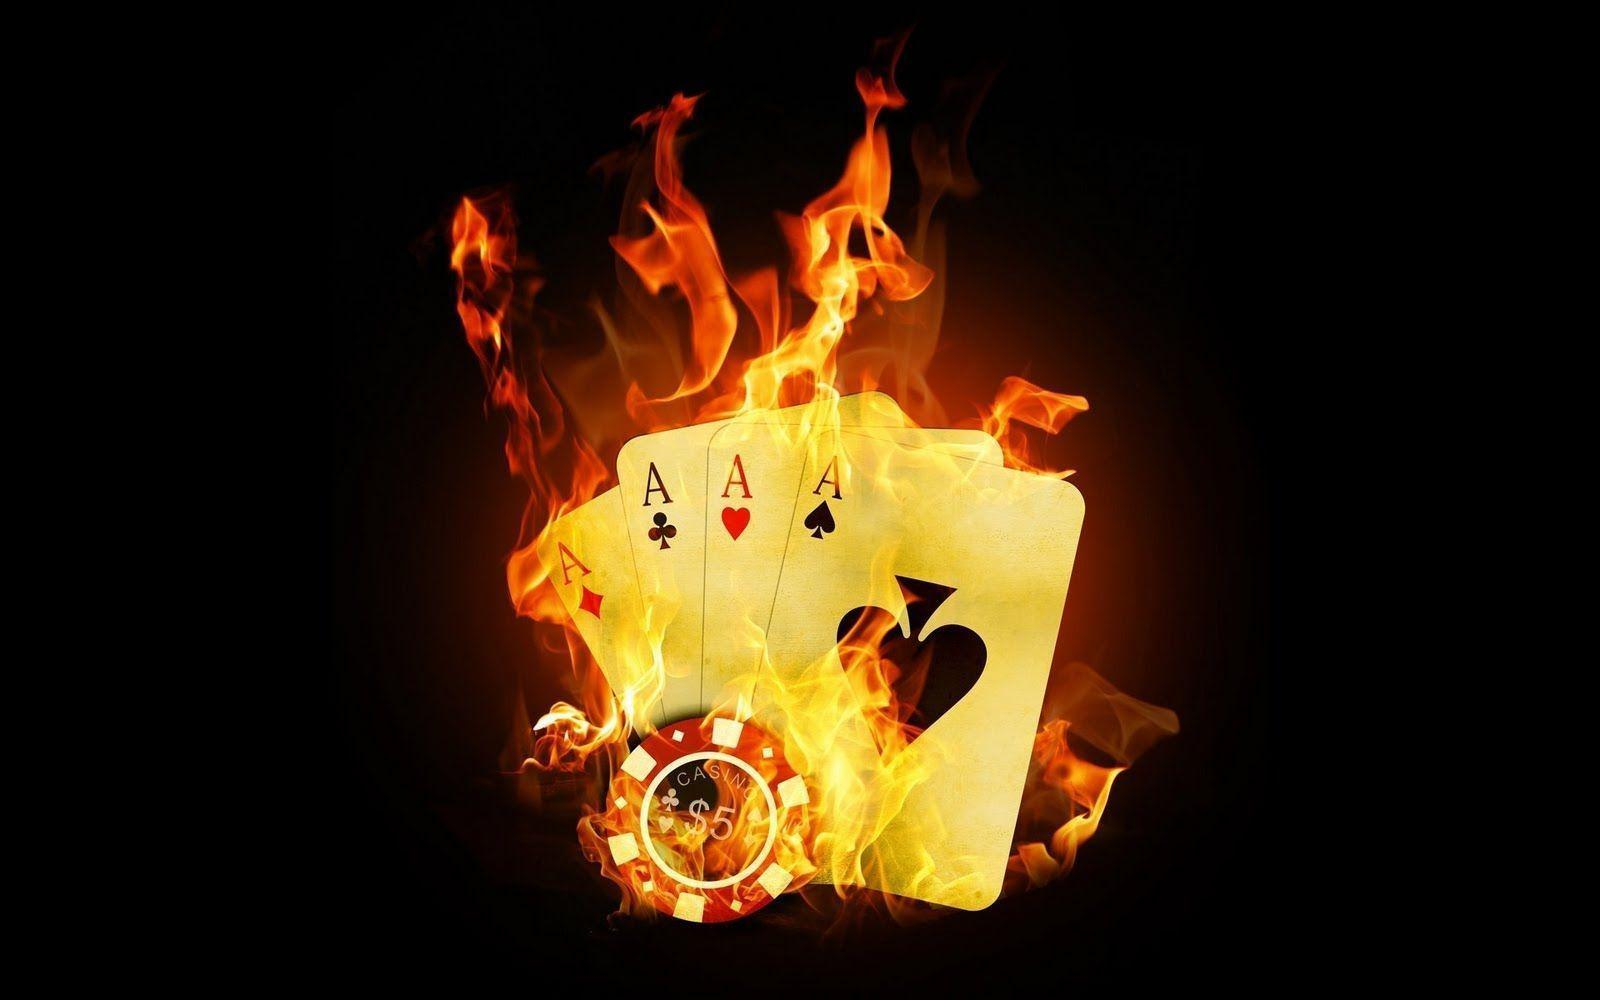 Playing Cards Wallpapers - Wallpaper Cave